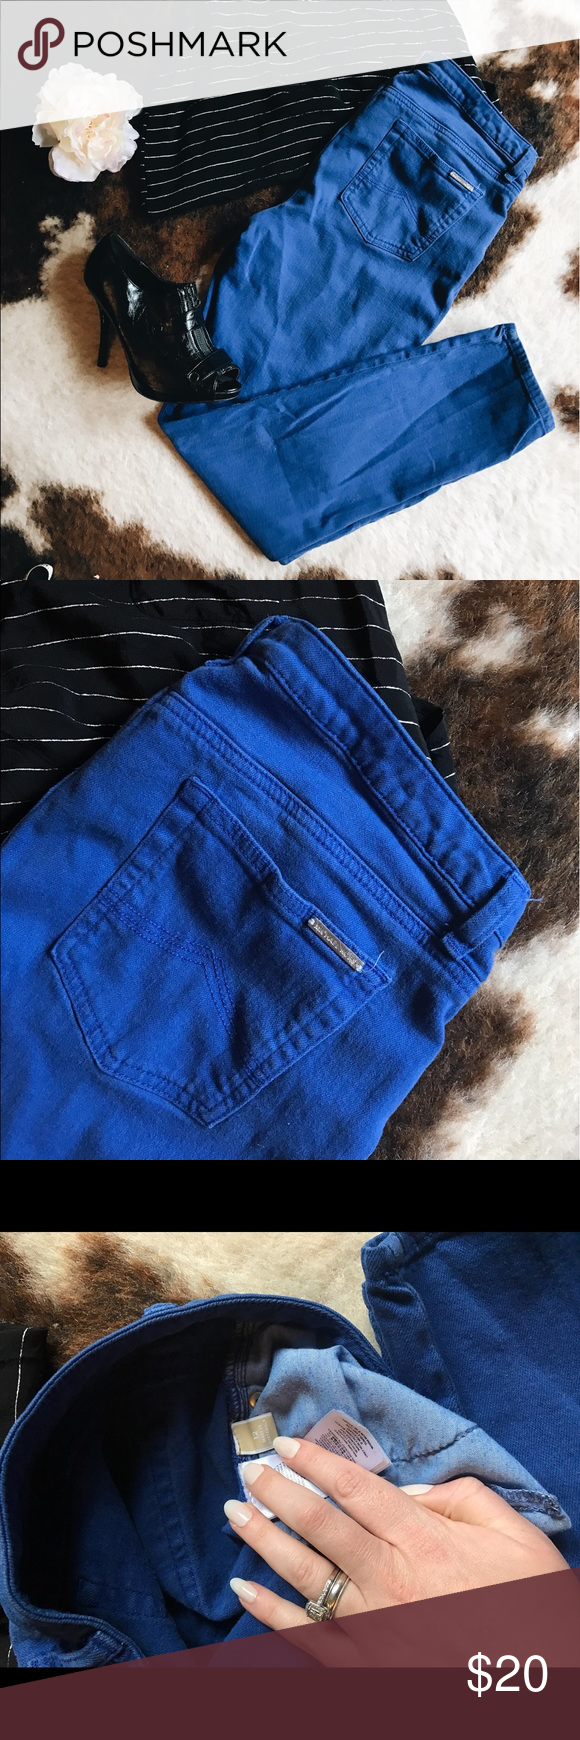 Michael Kors royal blue skinny jeans Michael Kors royal blue skinny jeans, size 12. Great condition! Mid-rise, comfy and flattering. Tank and booties also available! Michael Kors Jeans Skinny